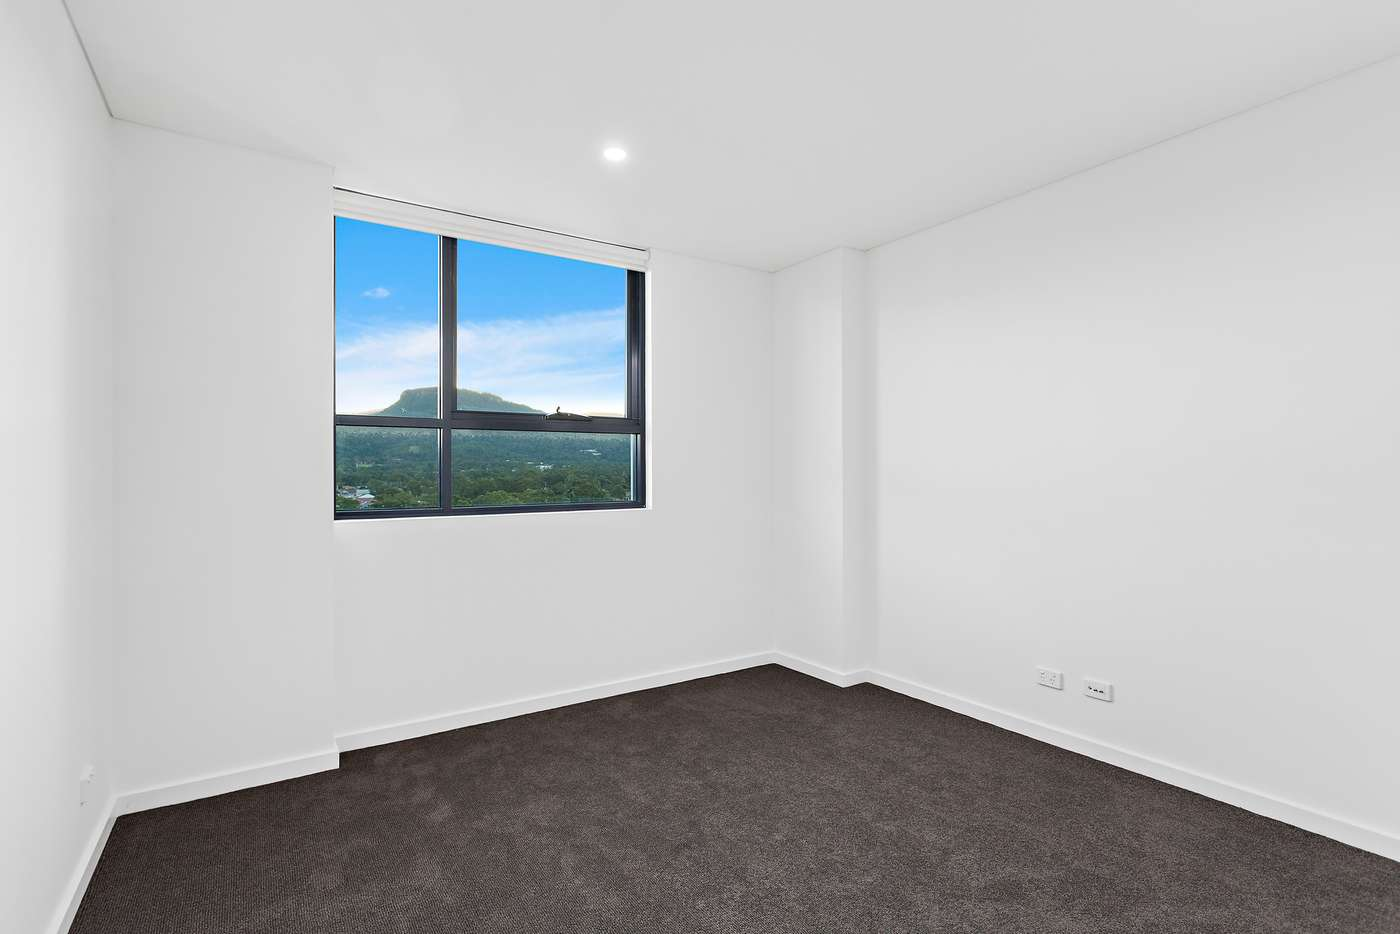 Sixth view of Homely unit listing, 18/3-5 Wiseman Avenue, Wollongong NSW 2500